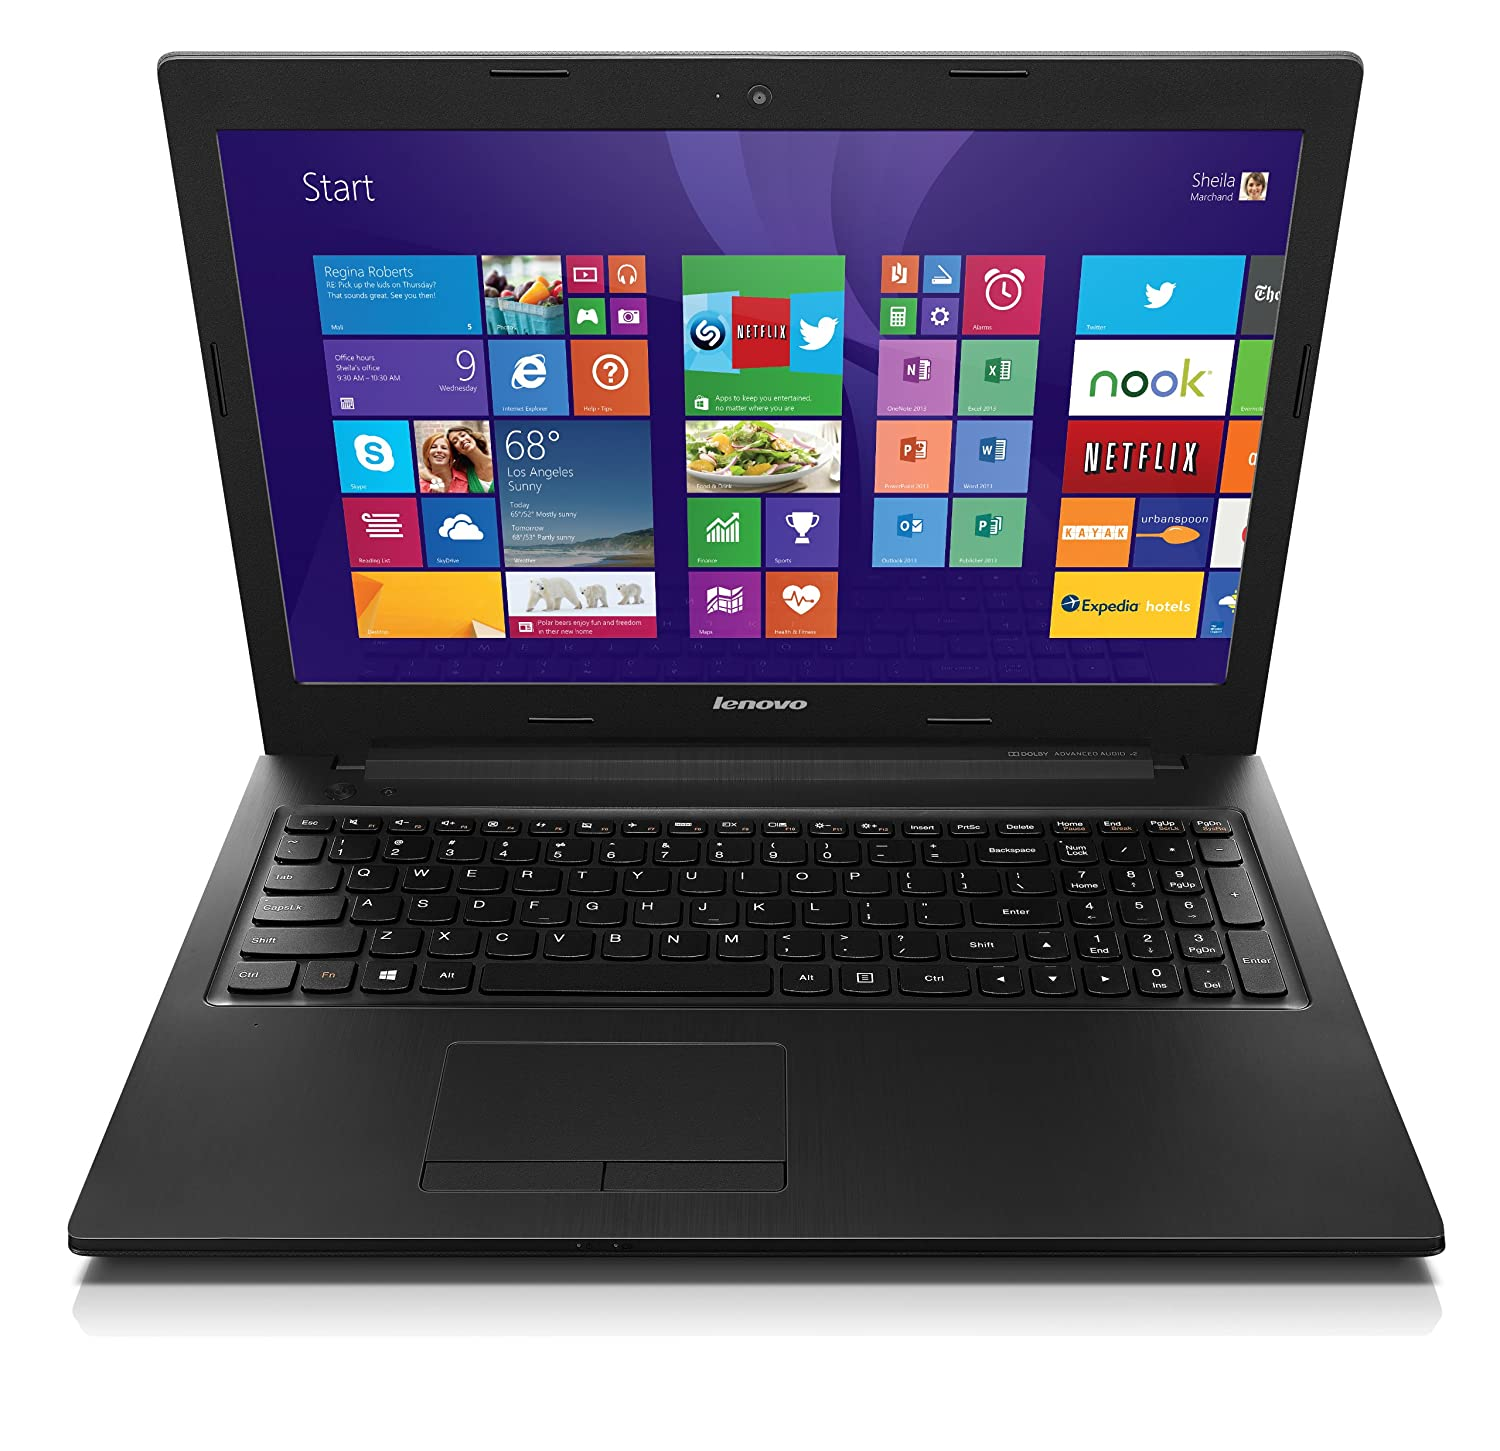 Lenovo 59410273 IdeaPad G710 17.3-Inch Laptop Black